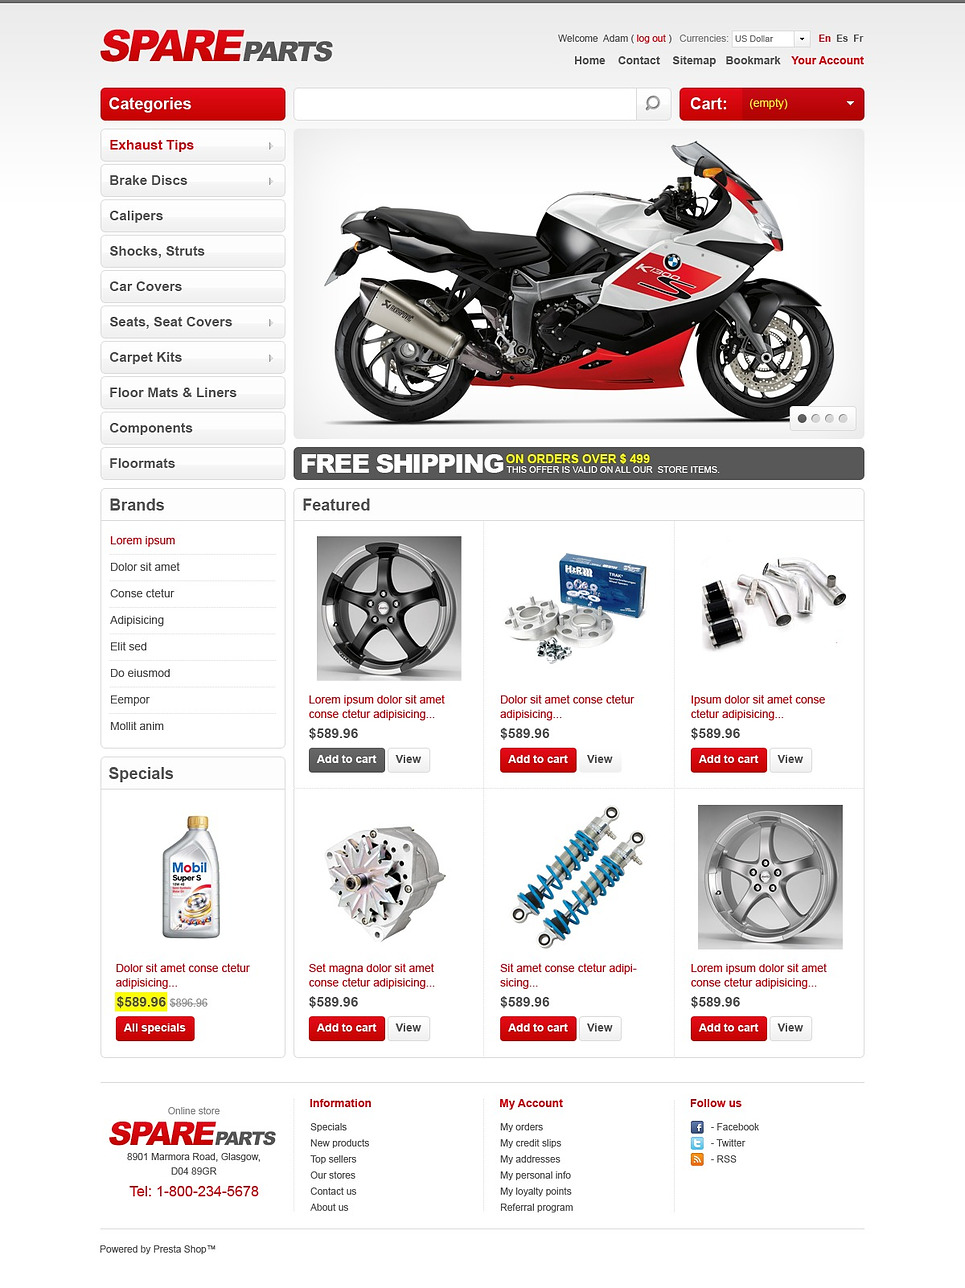 Spare Parts (PrestaShop theme) Item Picture